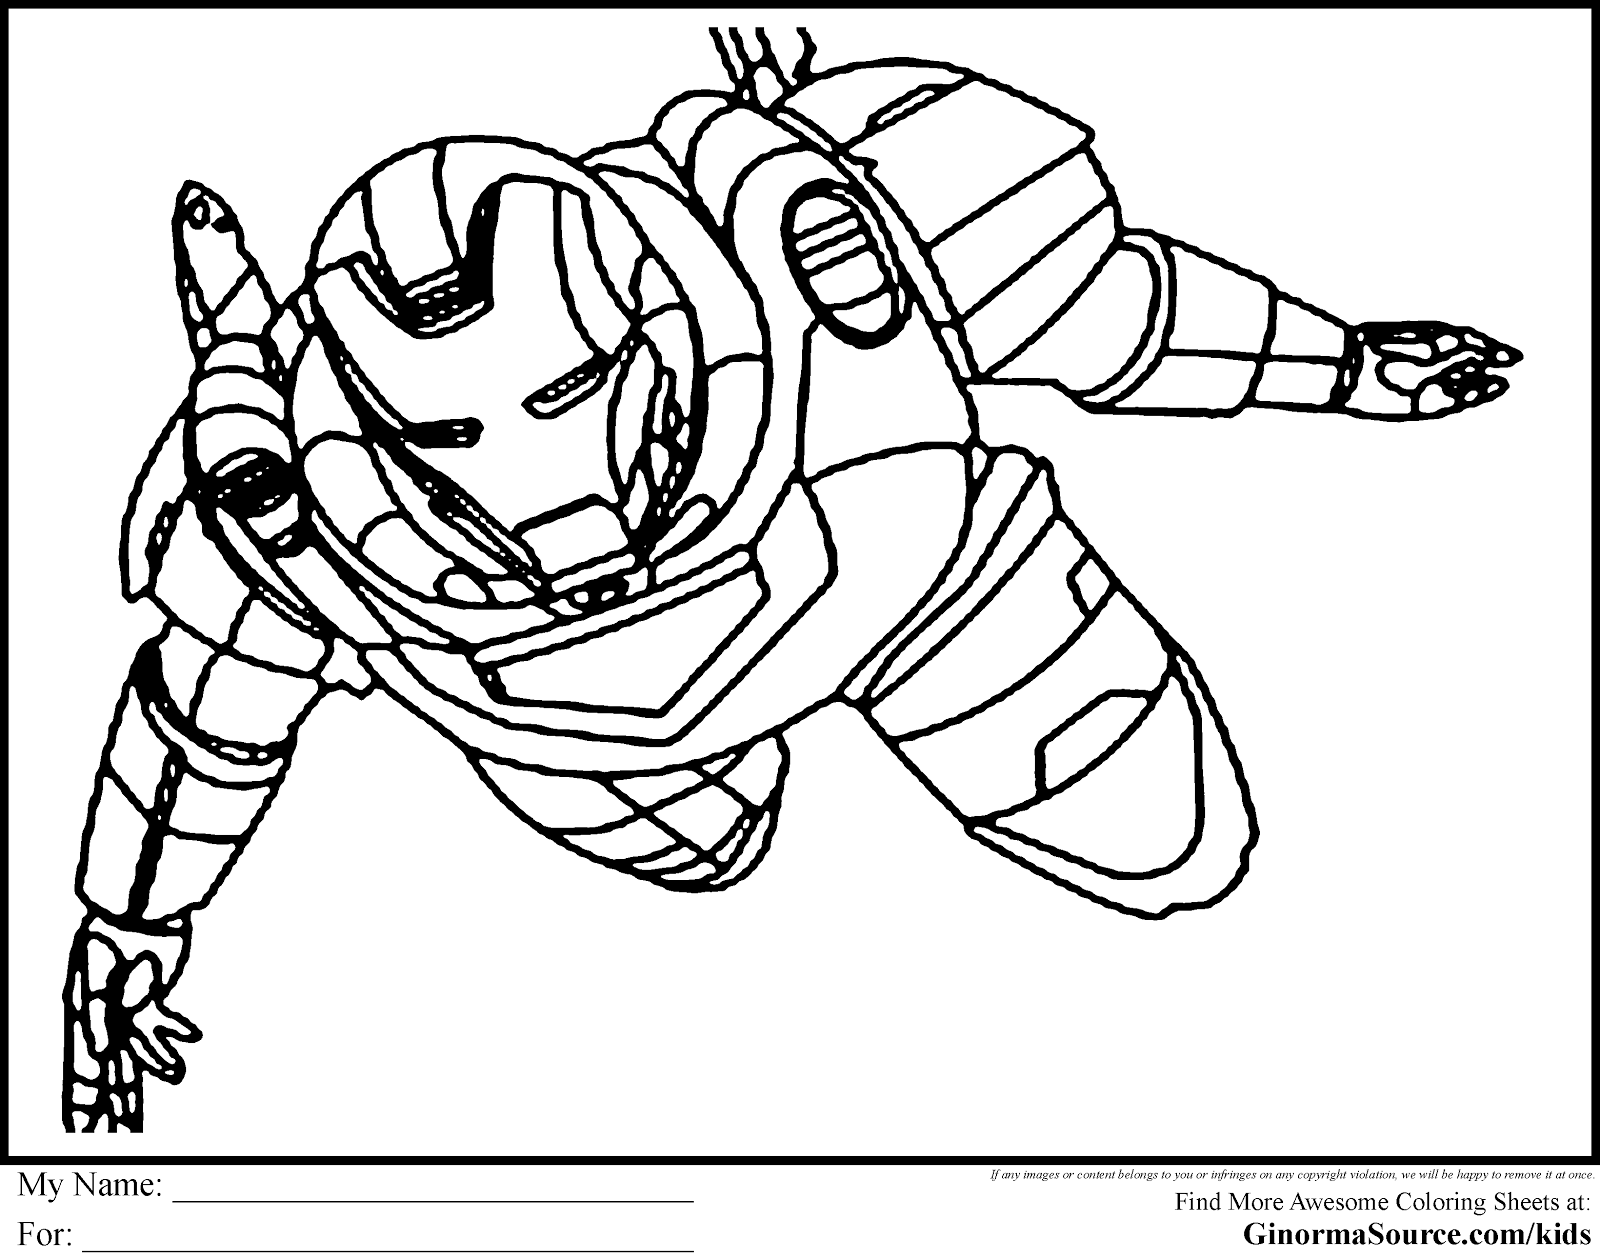 free printable superhero coloring pages superhero coloring pages to download and print for free coloring pages free superhero printable